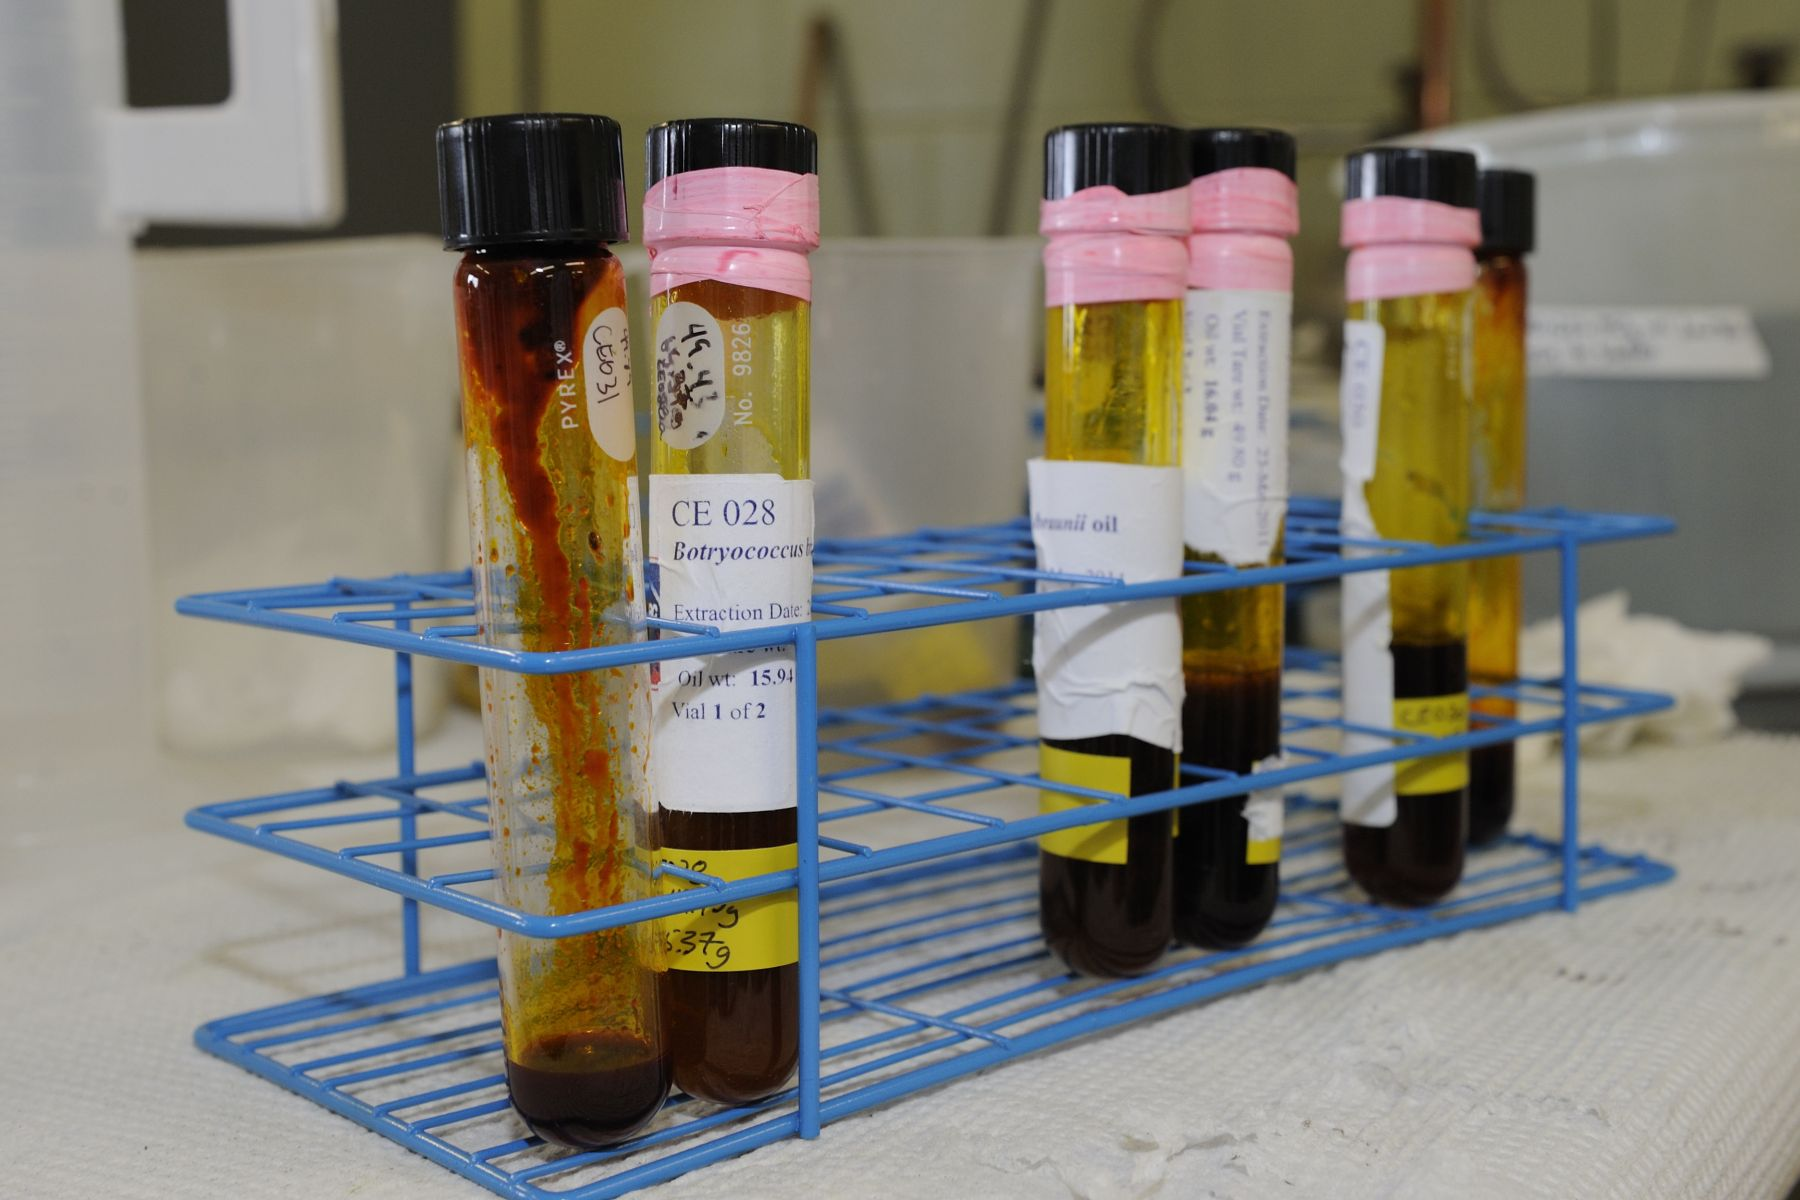 At the station, NRC researchers and its partners are developing technologies in areas of algae cultivation, oil extraction and ultimately, biofuel production. The collaborators are also investigating innovative ways to use the by-products of fuel production, such as in health-related products and animal feed.